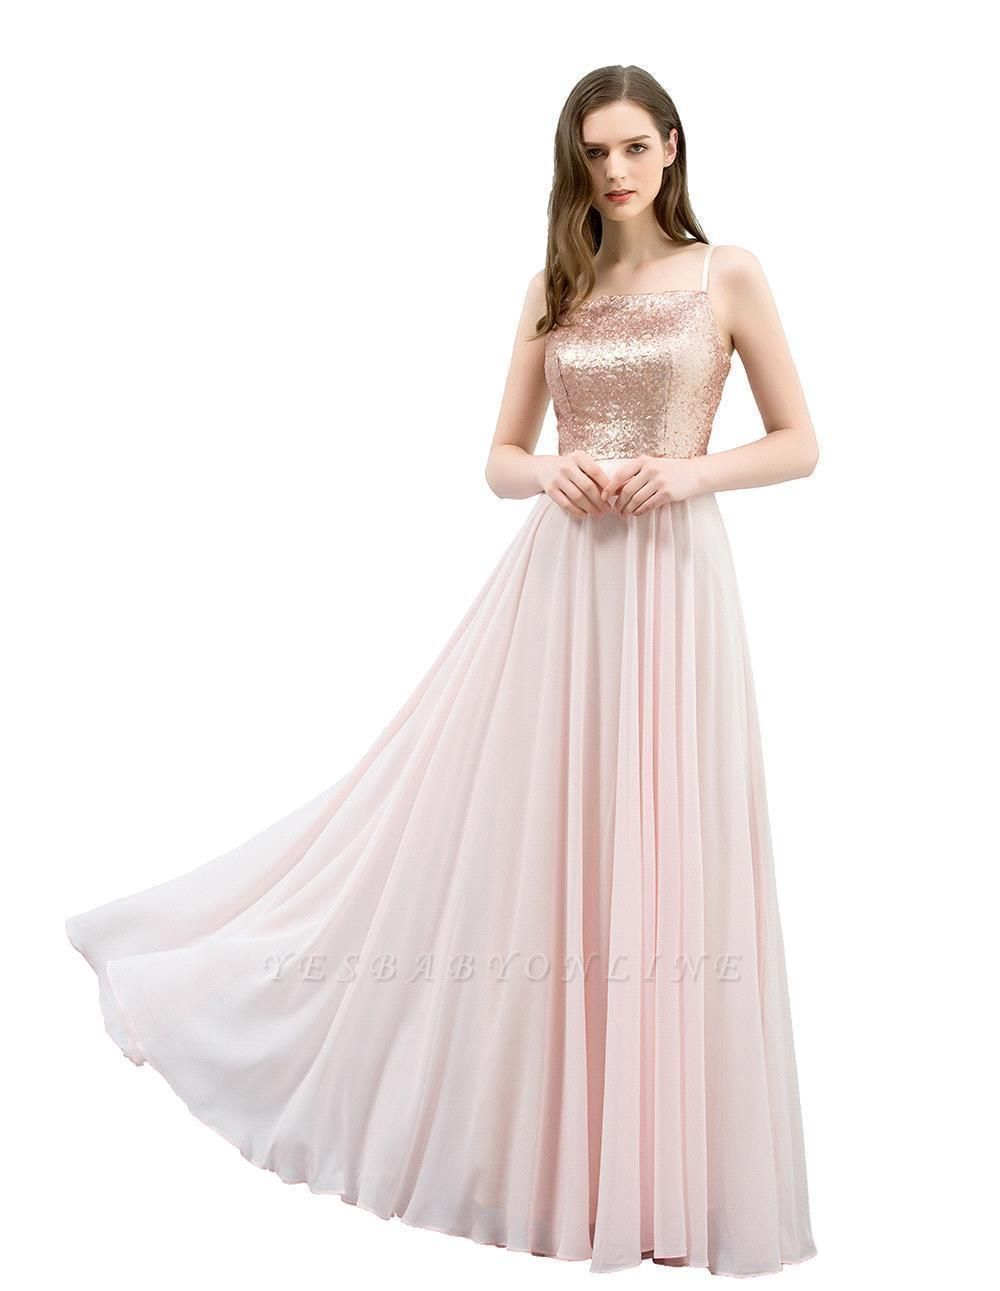 Cheap A-line Floor Length Spaghetti Sequined Top Chiffon Prom Dress in Stock